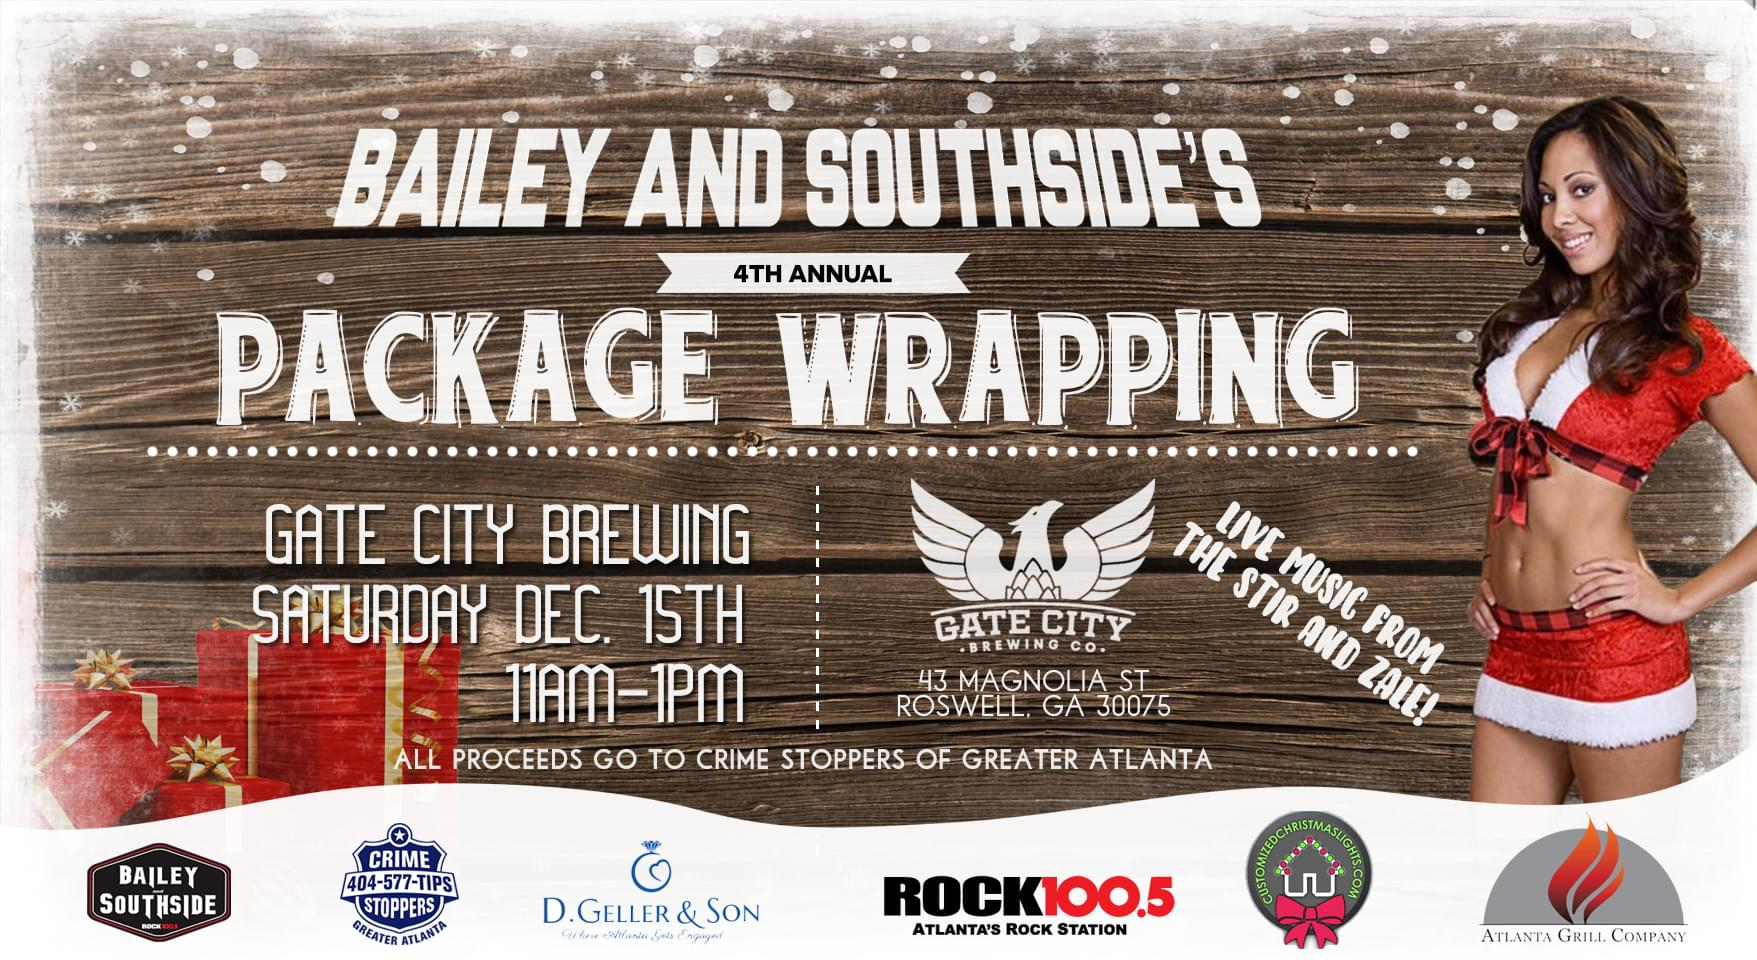 4th Annual Bailey and Southside Package Wrapping